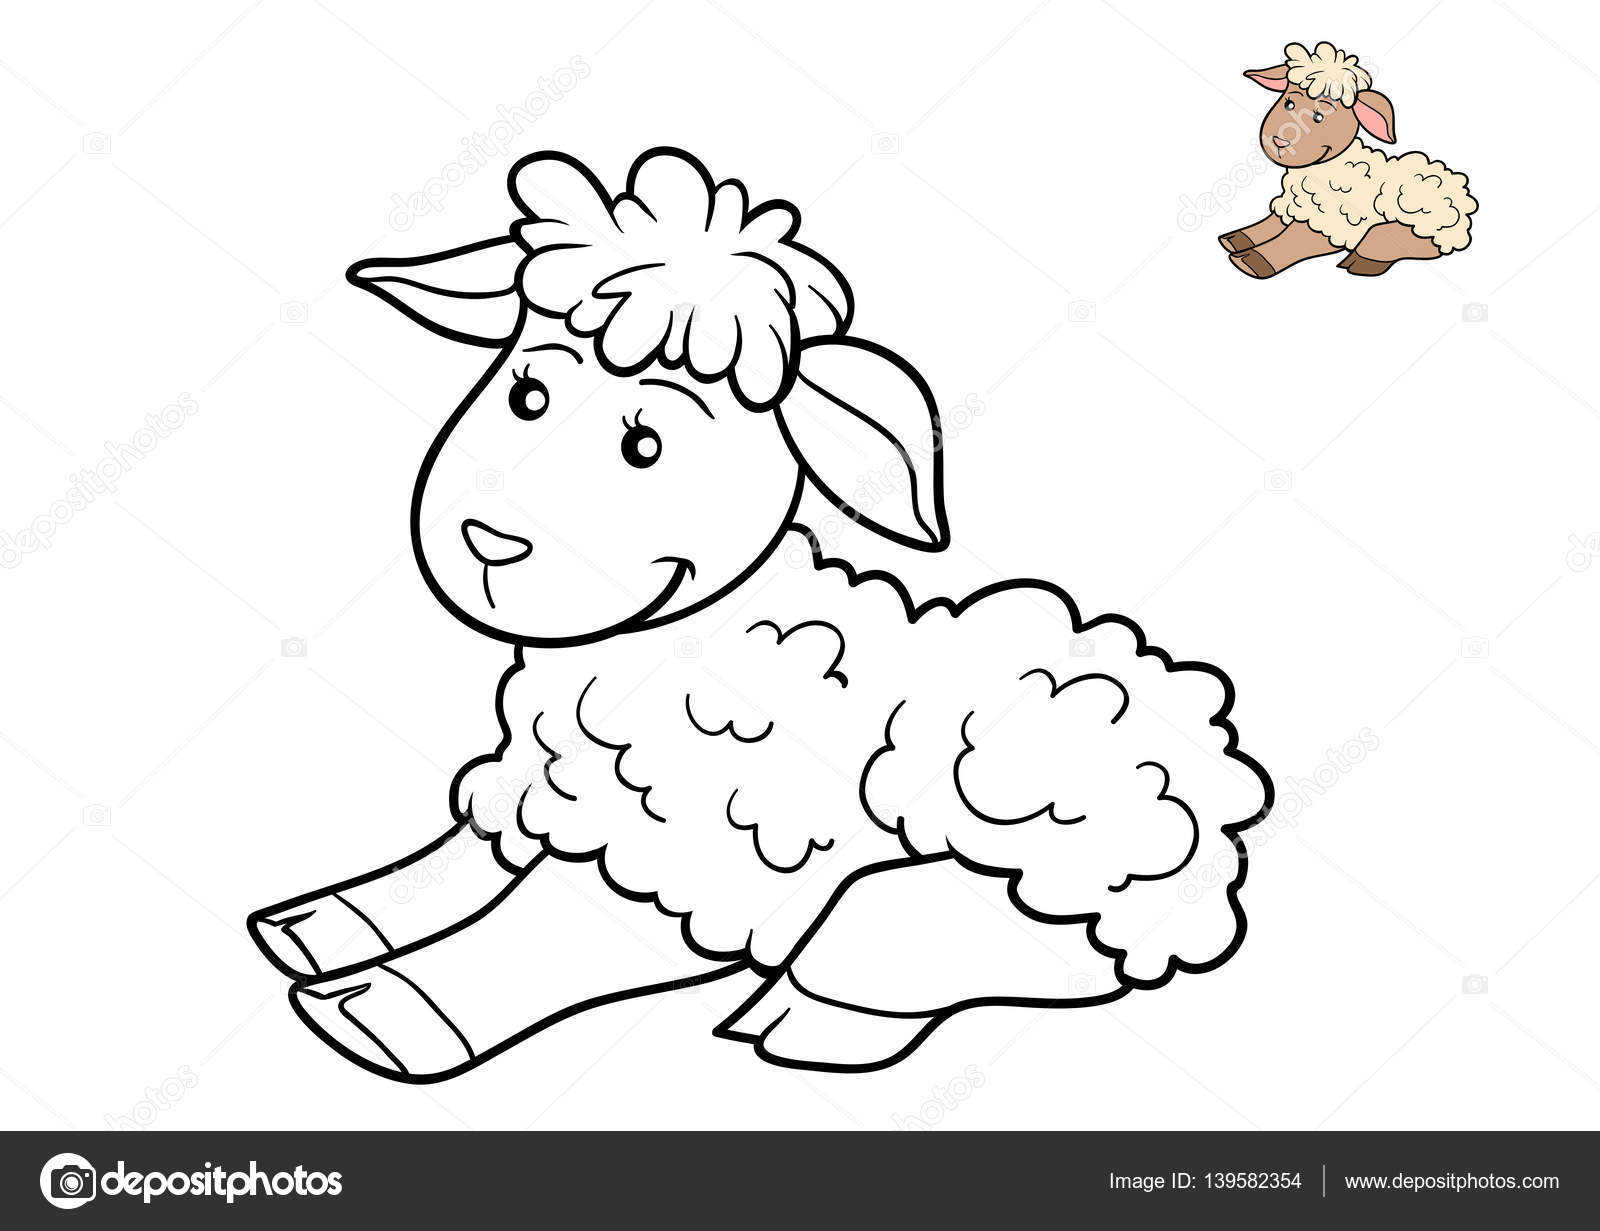 Impressionnant Photo De Mouton Pour Coloriage